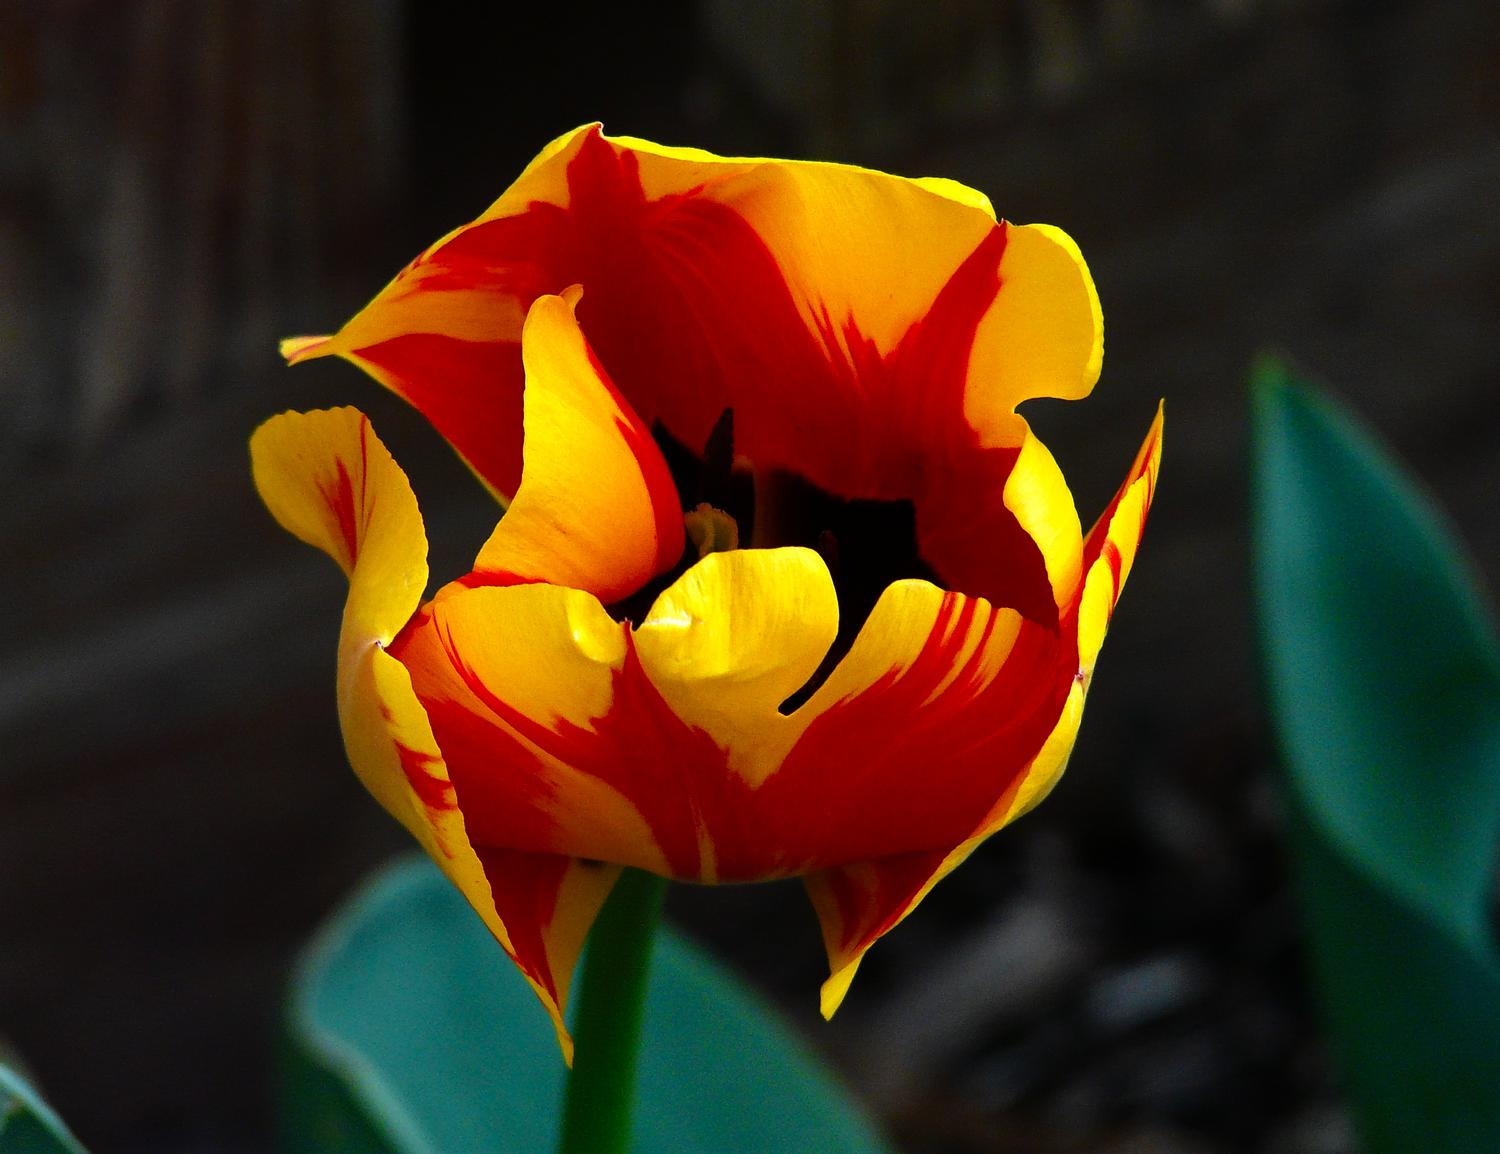 Tulip grown by The Artist's Muse - #1 - Tulip #15 - - art  - photography - by Tony Karp